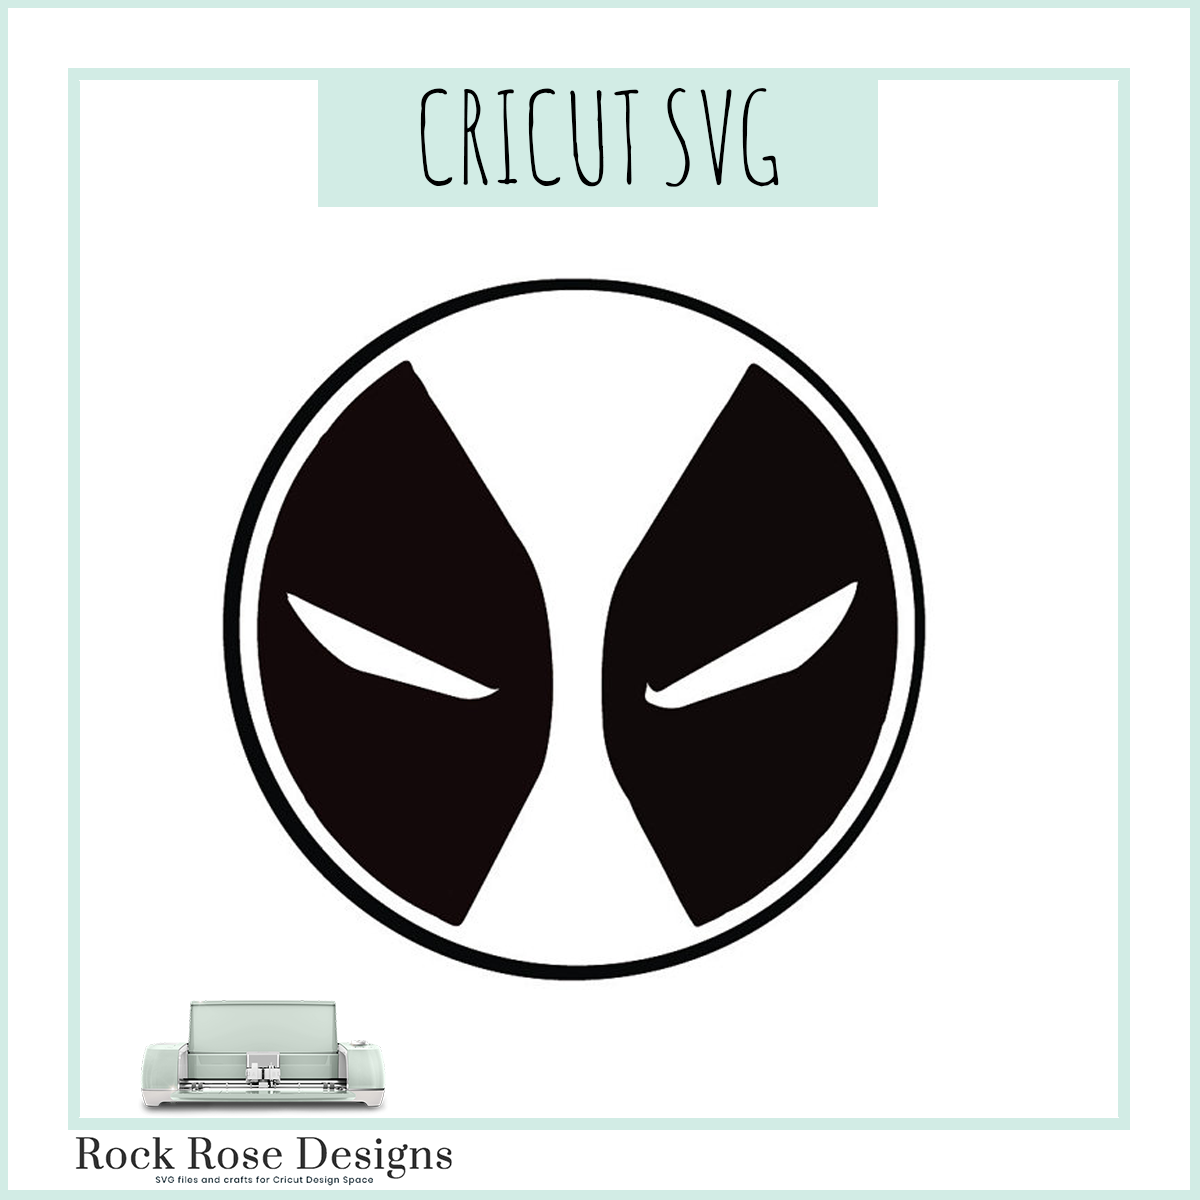 Deadpool Svg Cut File Rock Rose Designs Rock Rose Designs